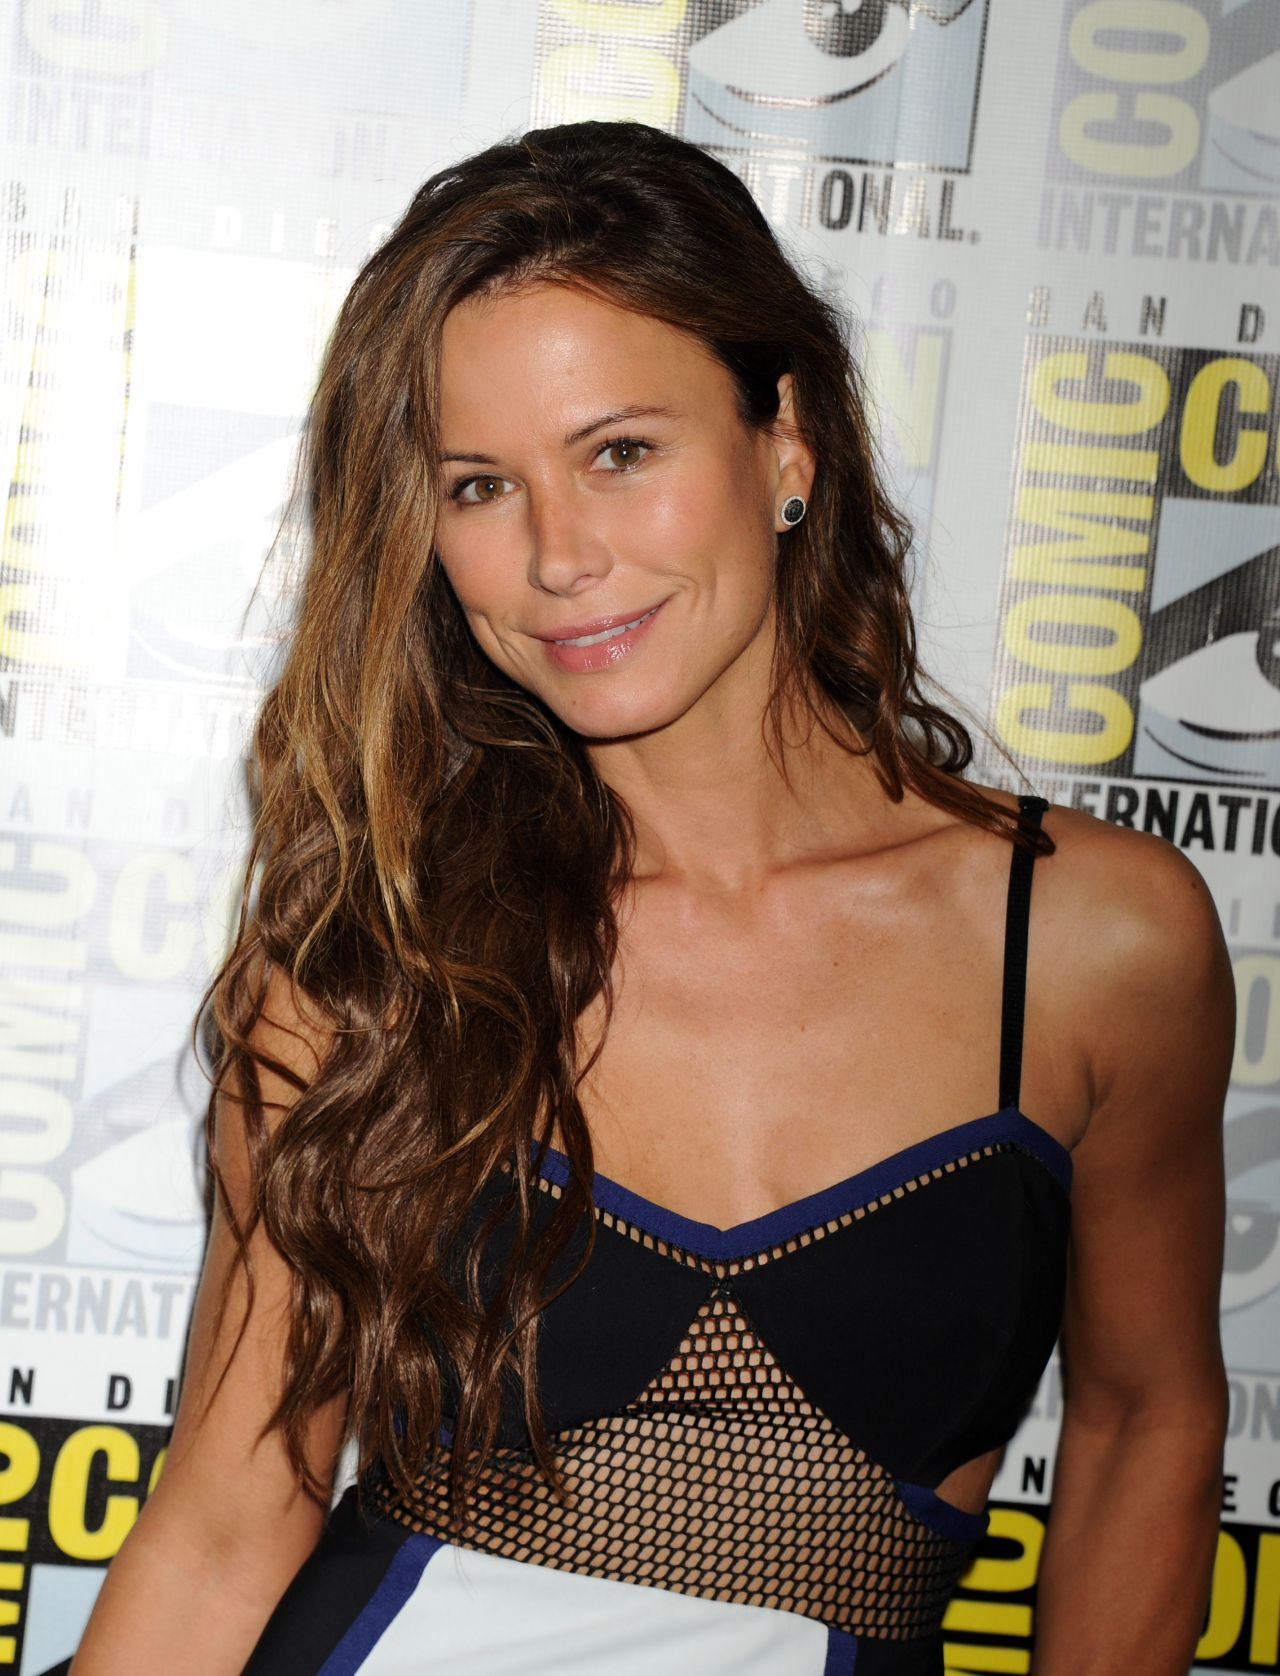 Young Rhona Mitra nudes (38 foto and video), Sexy, Paparazzi, Feet, underwear 2019